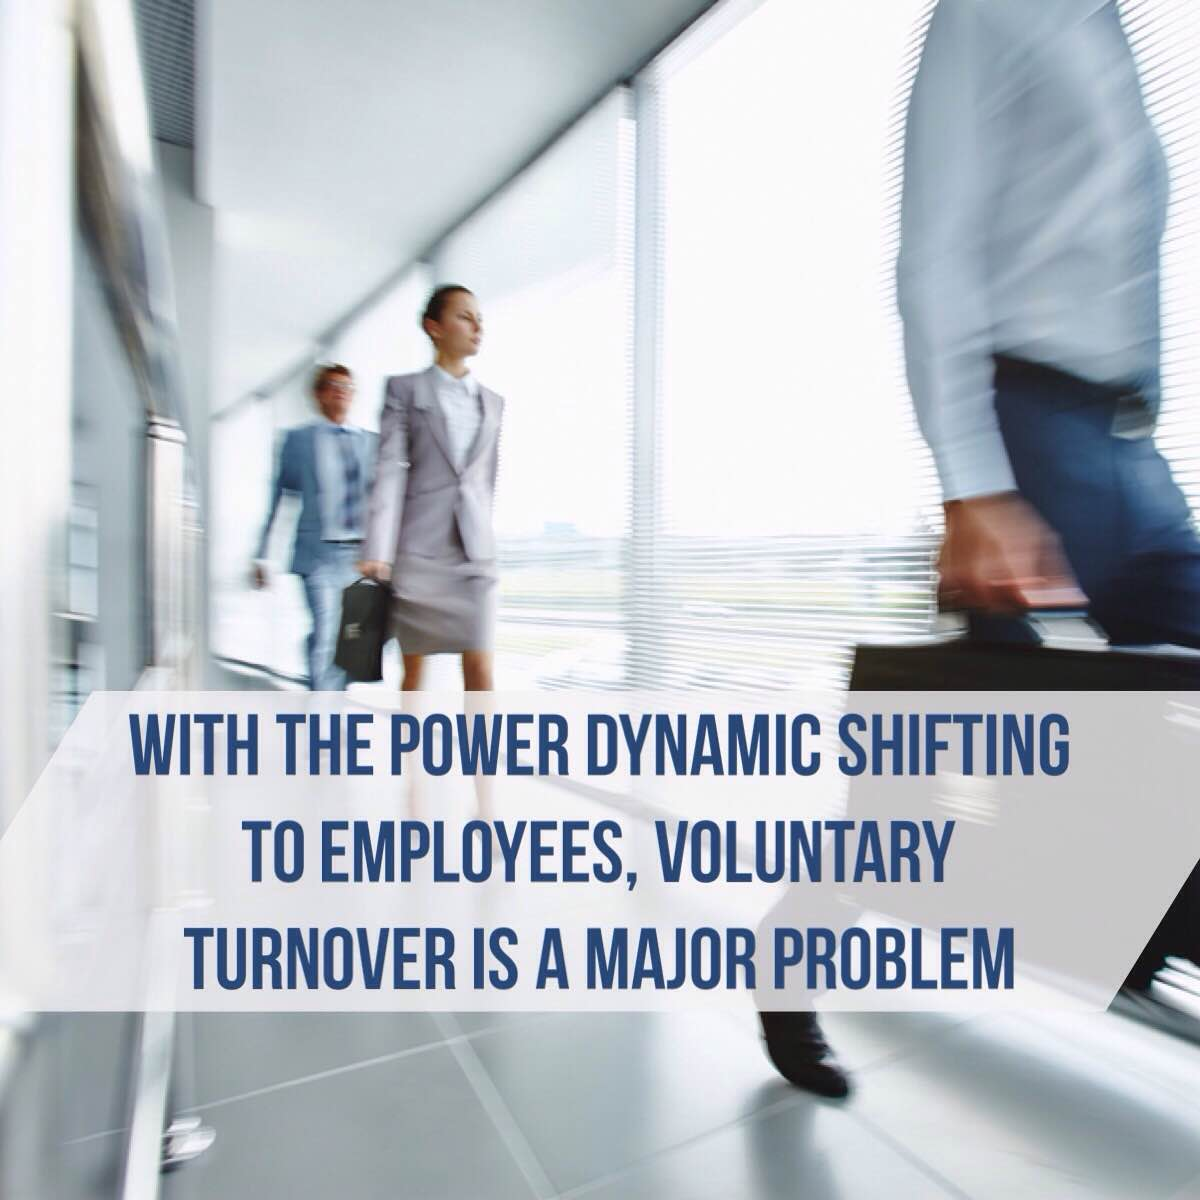 ibm employee turnover The cost of employee turnover is staggering one society for human resource management publication predicted that direct employee replacement costs can reach as high as 50 percent to 60.